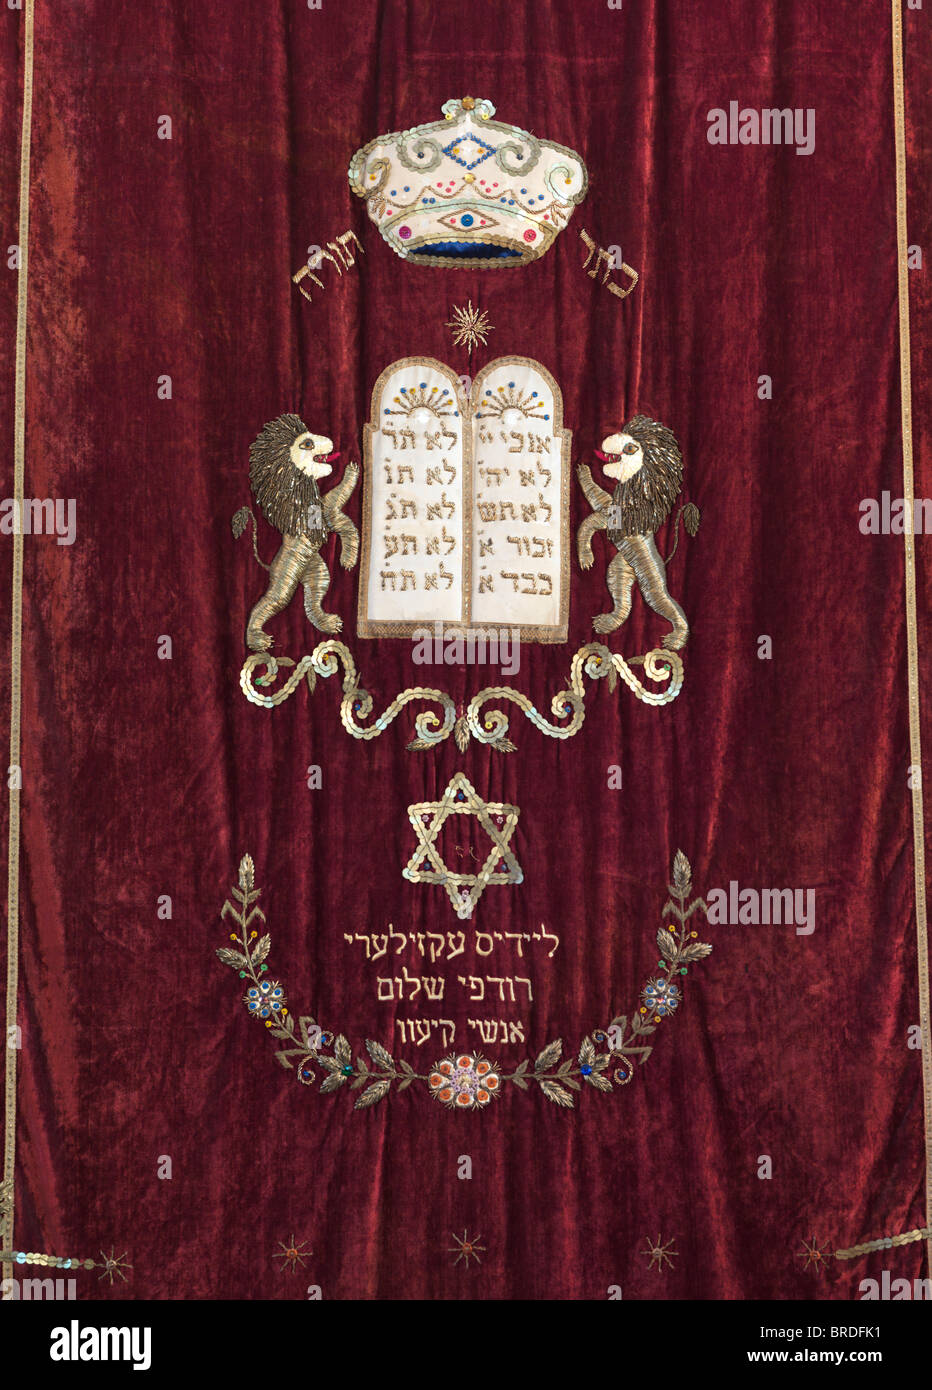 Jewish symbols Torah crown, Ten Commandments Plaque tablets, David's star in a synagogue ark, embroidery on - Stock Image